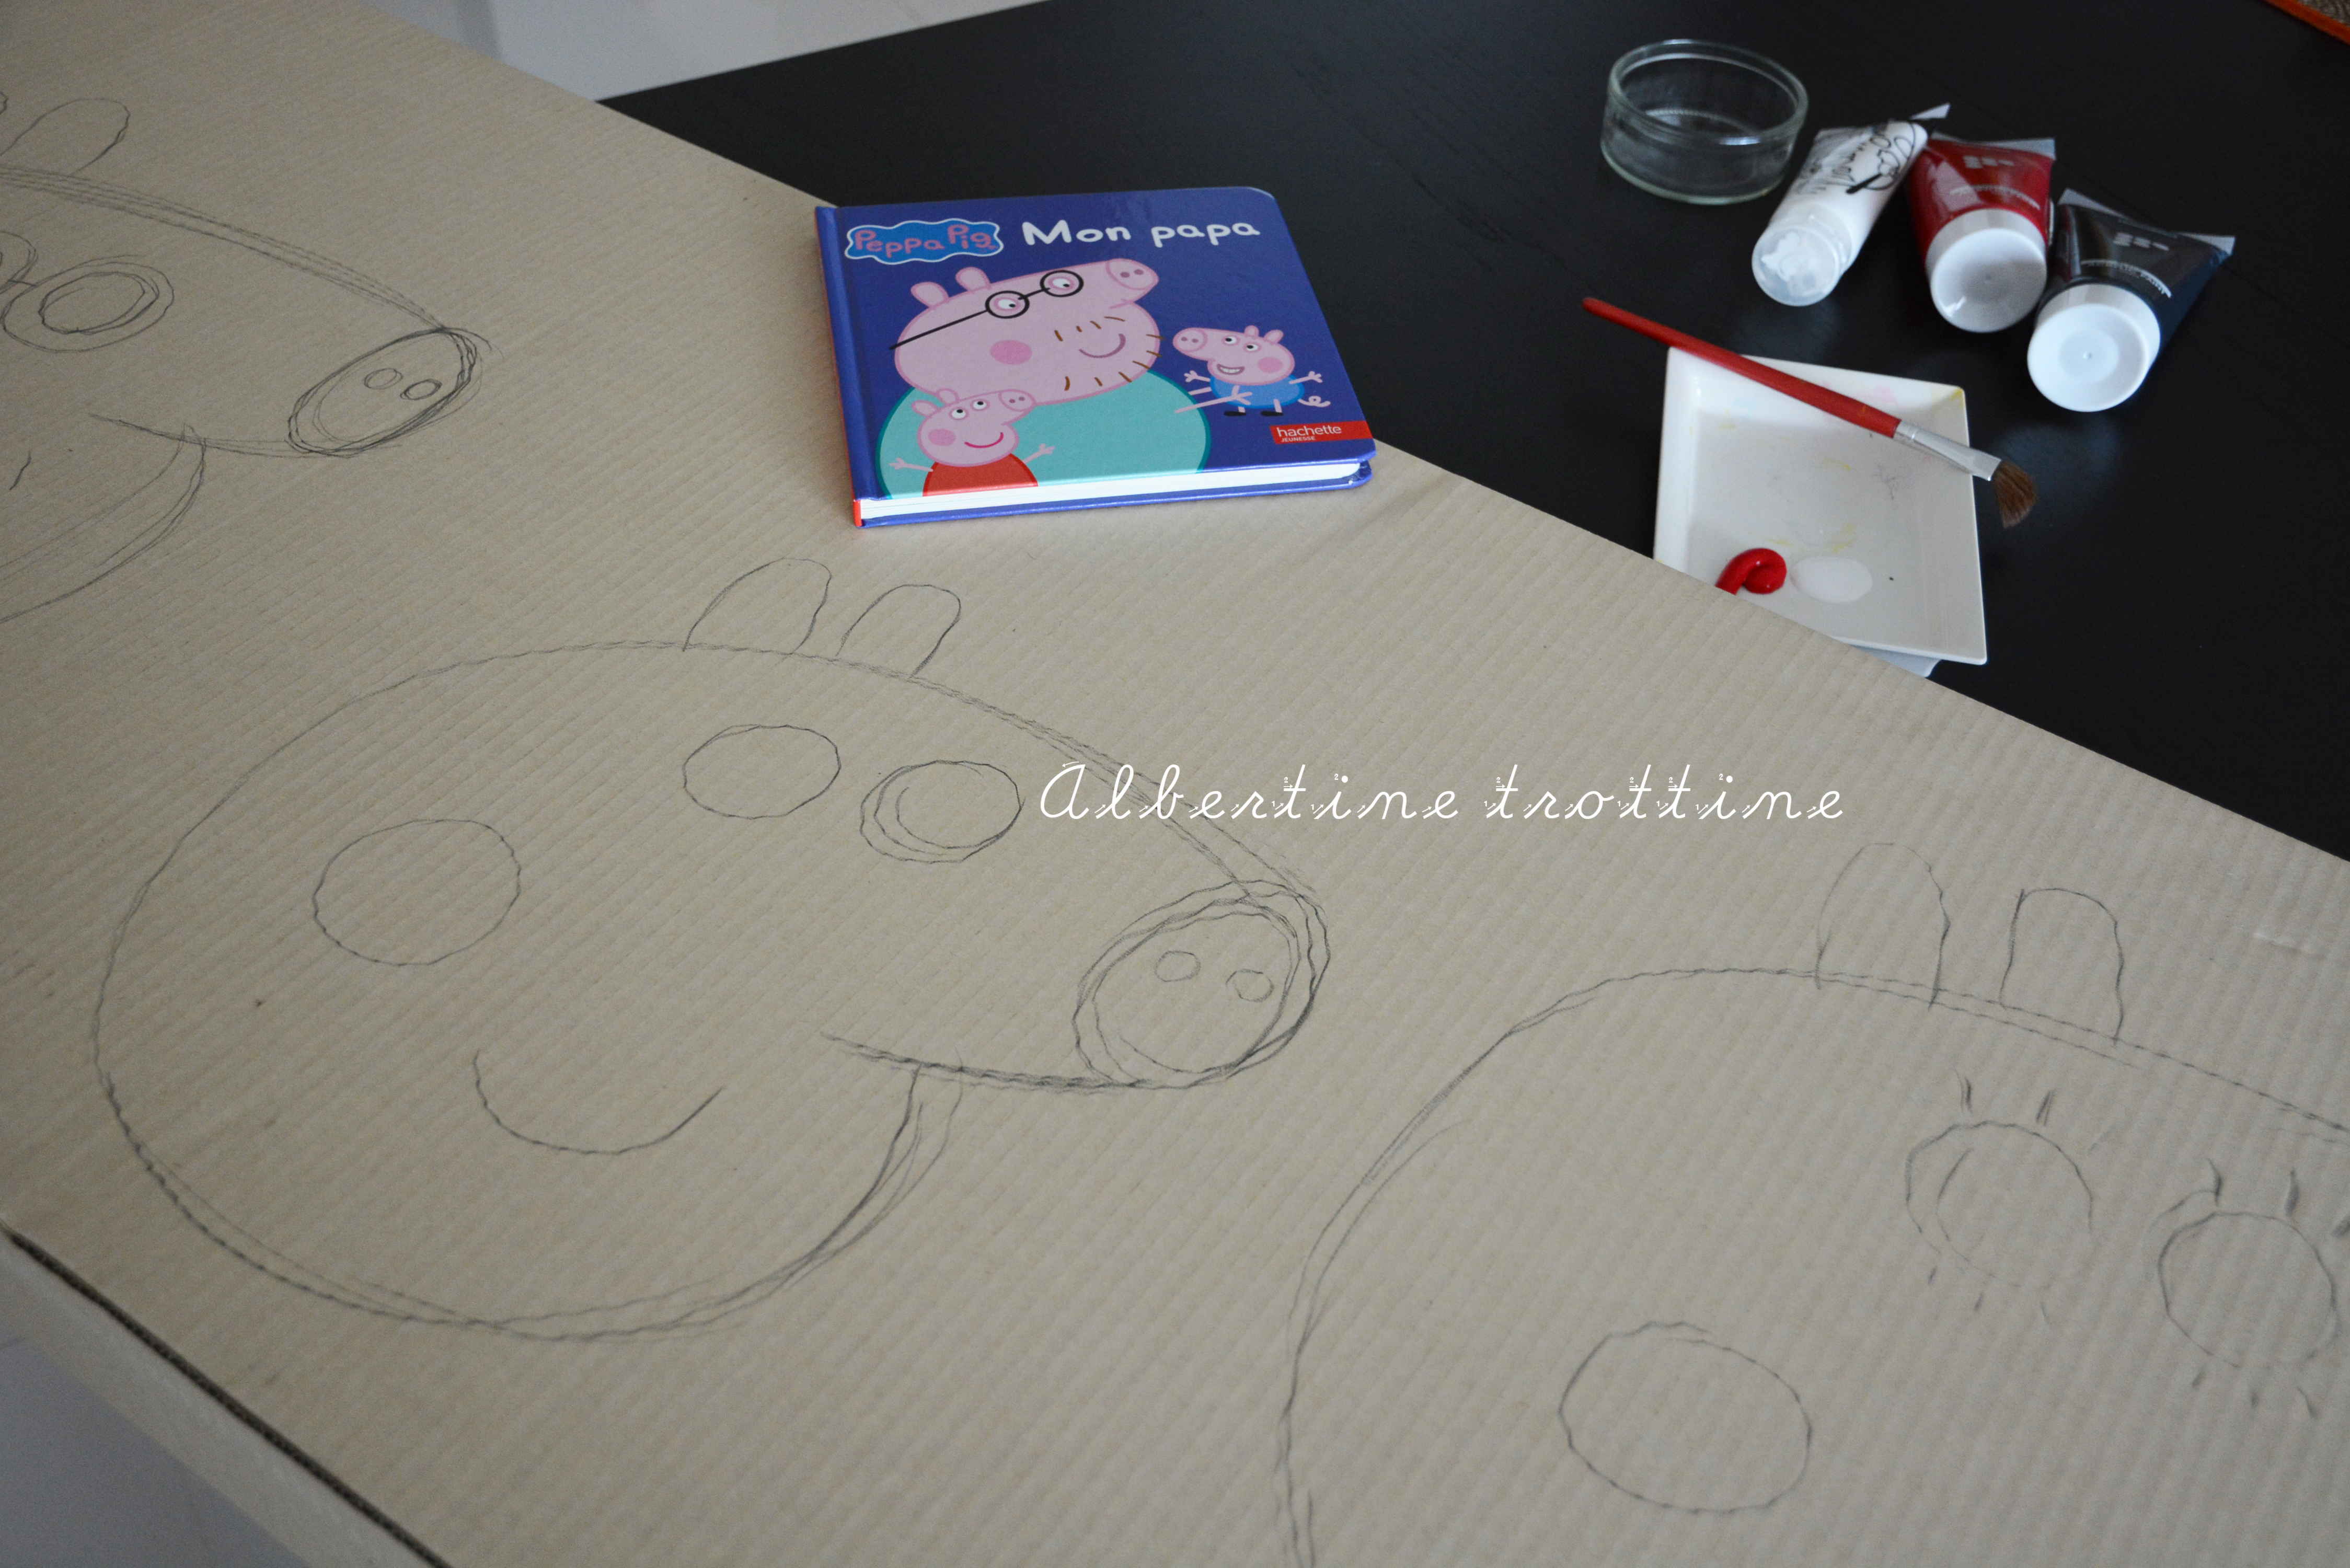 Dessiner Des Masques Peppa Pig Albertine Trottine